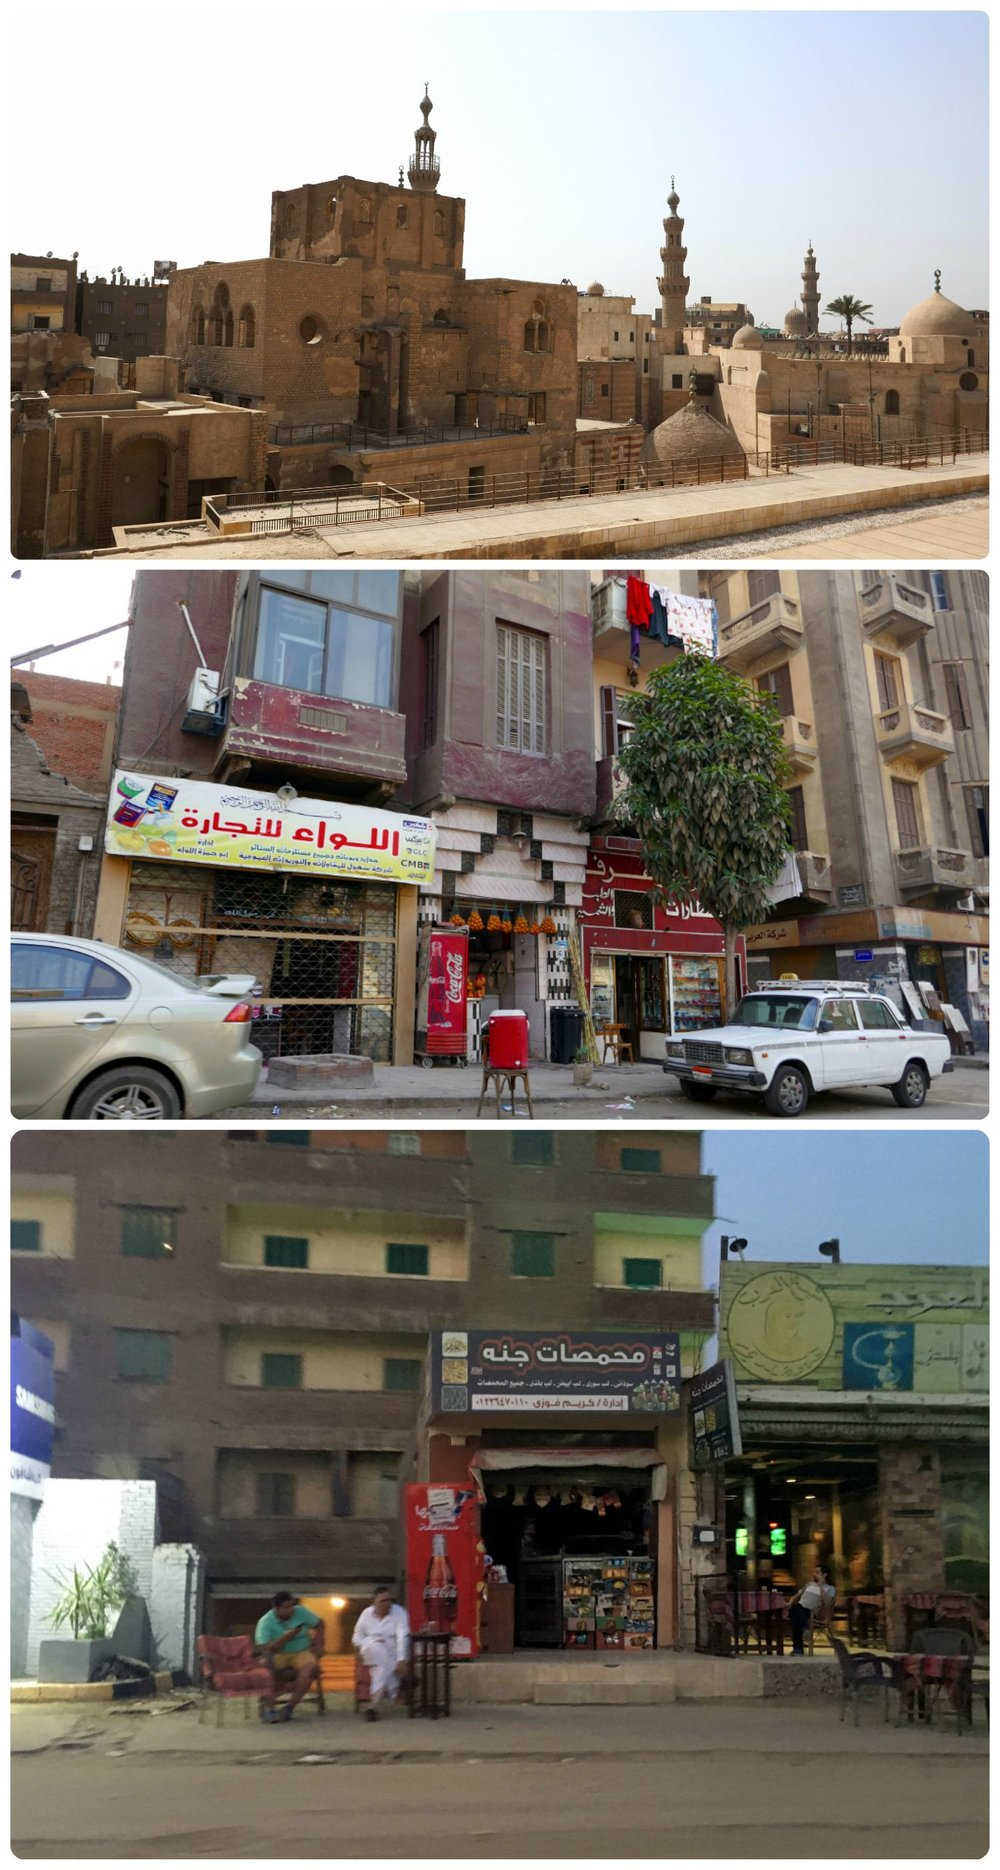 Top: On our way to Al Azhar Garden the path was blocked, but the view of the neighborhood caught our attention. Bottom two images: the streets as we made our way through Cairo.